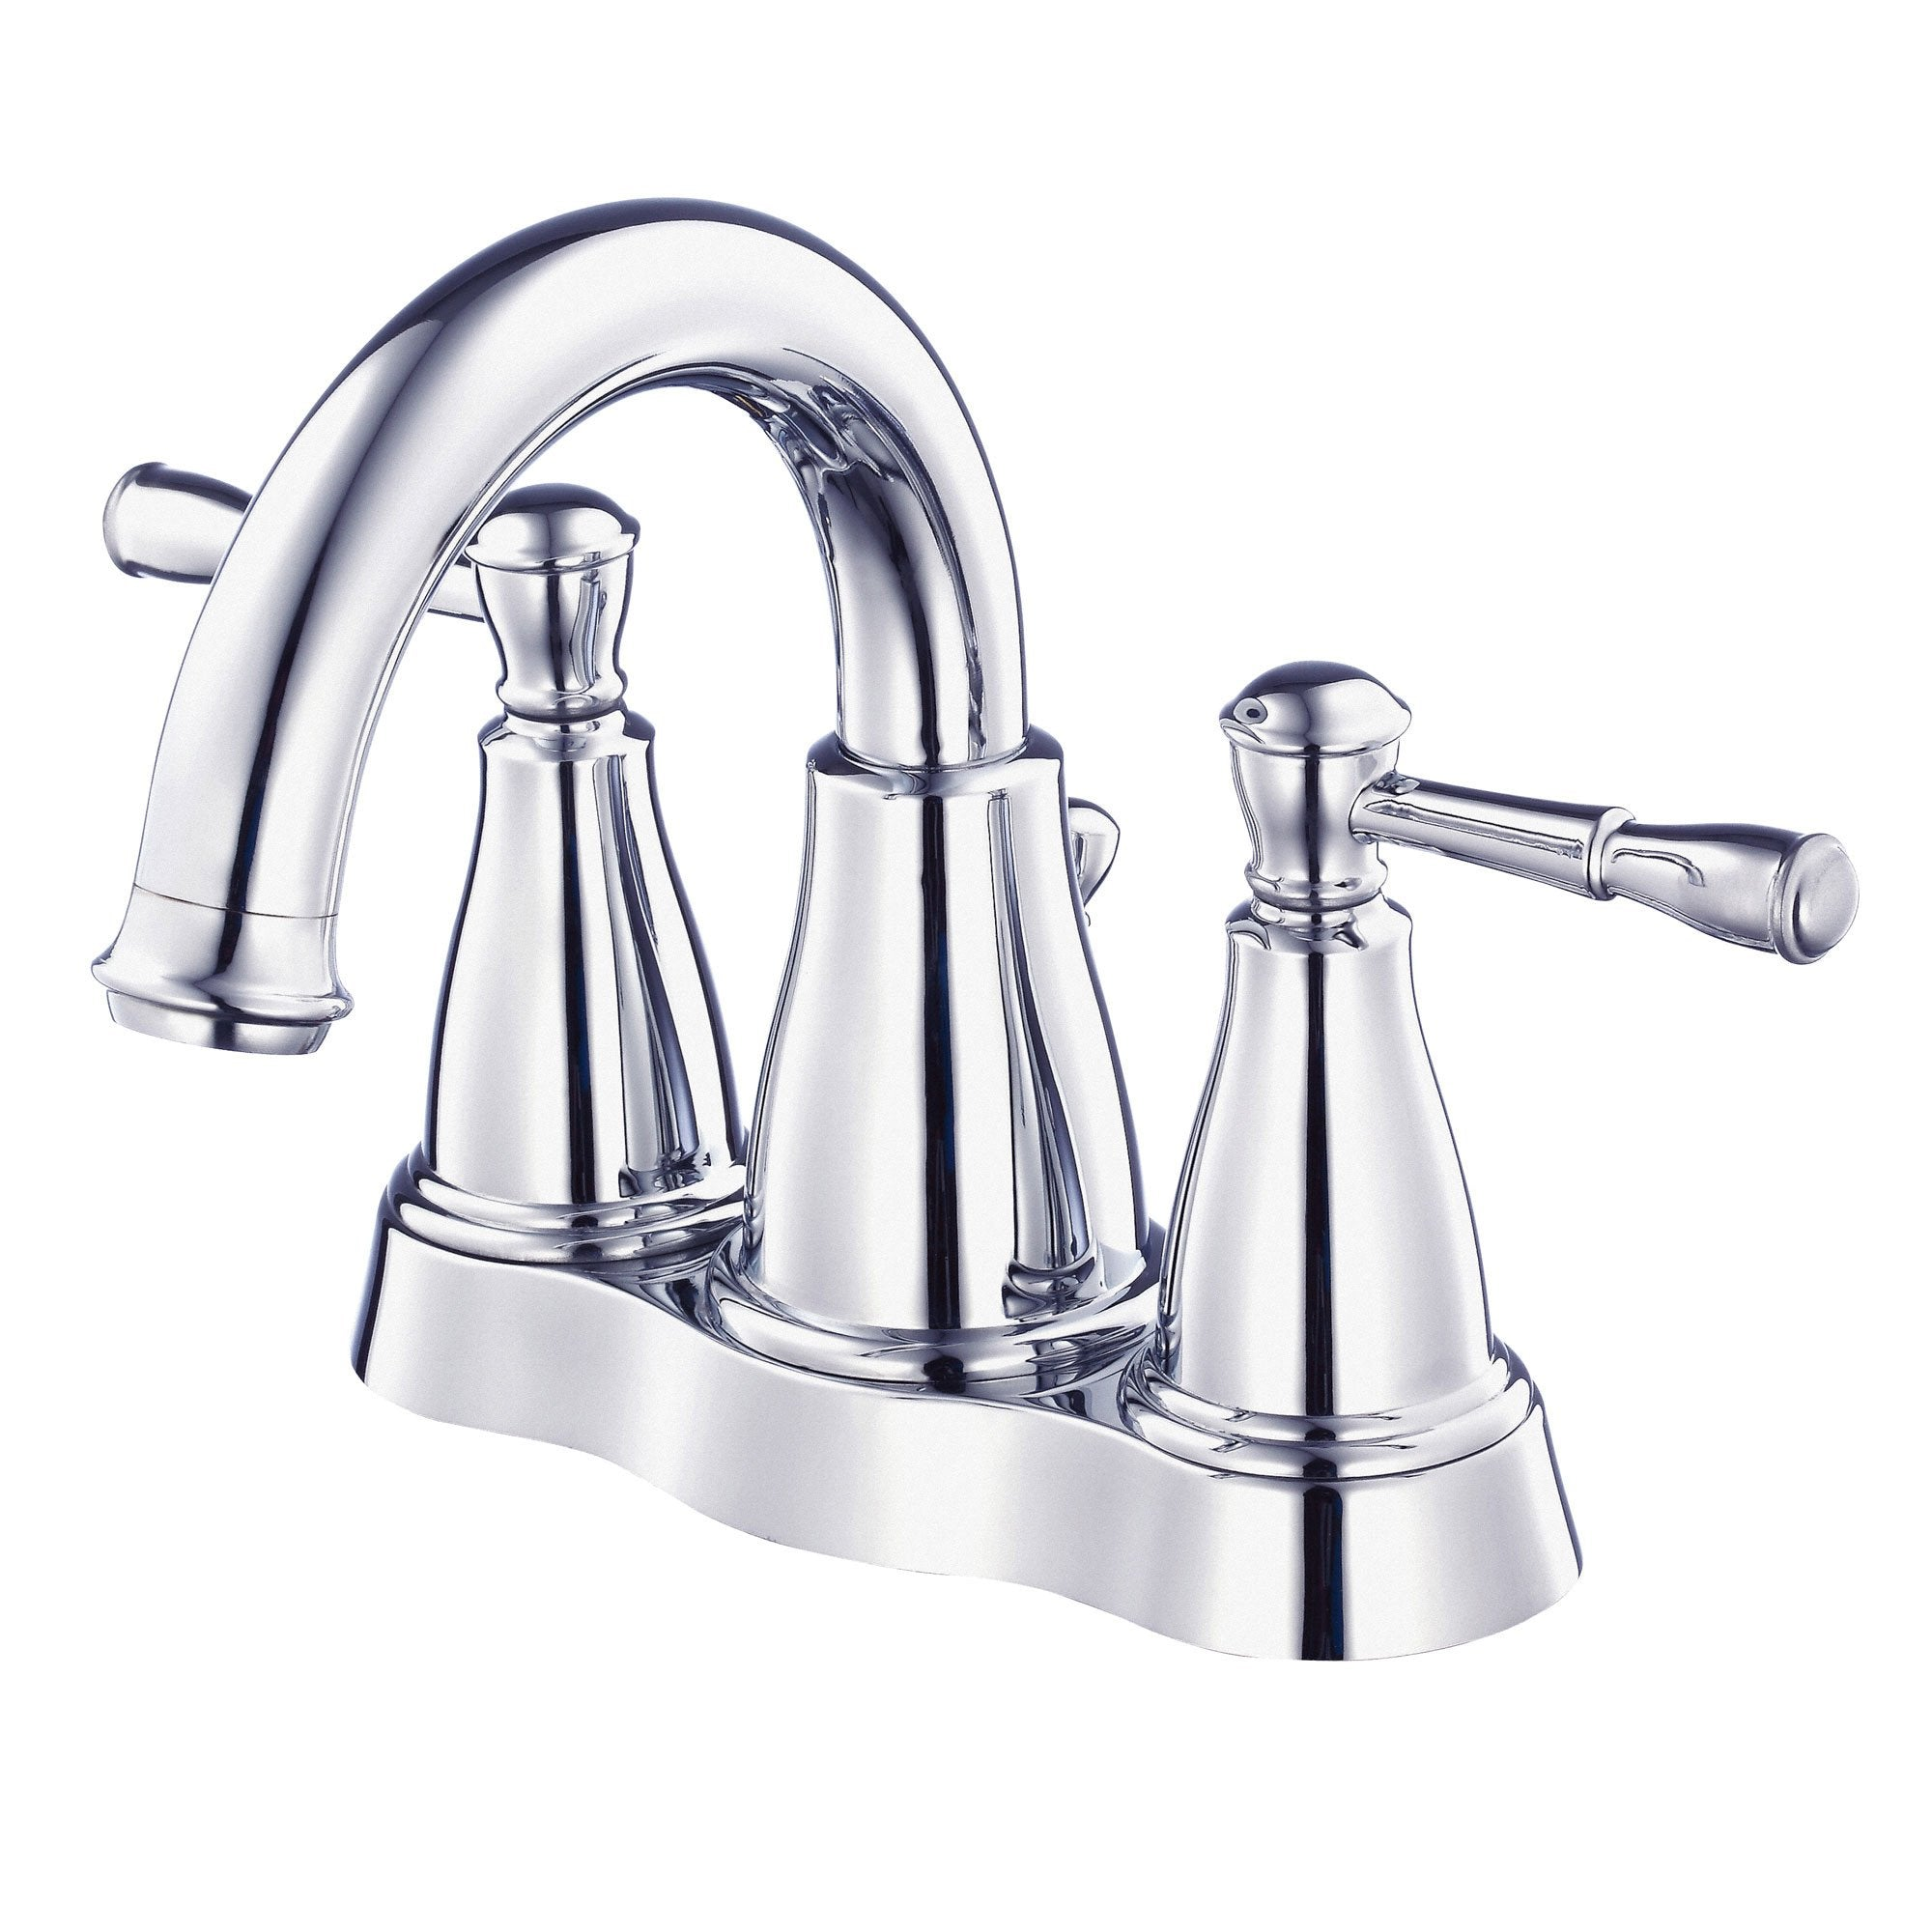 "Danze Eastham Chrome Wavy Handle 4"" Centerset Bathroom Faucet with Pop-up Drain"